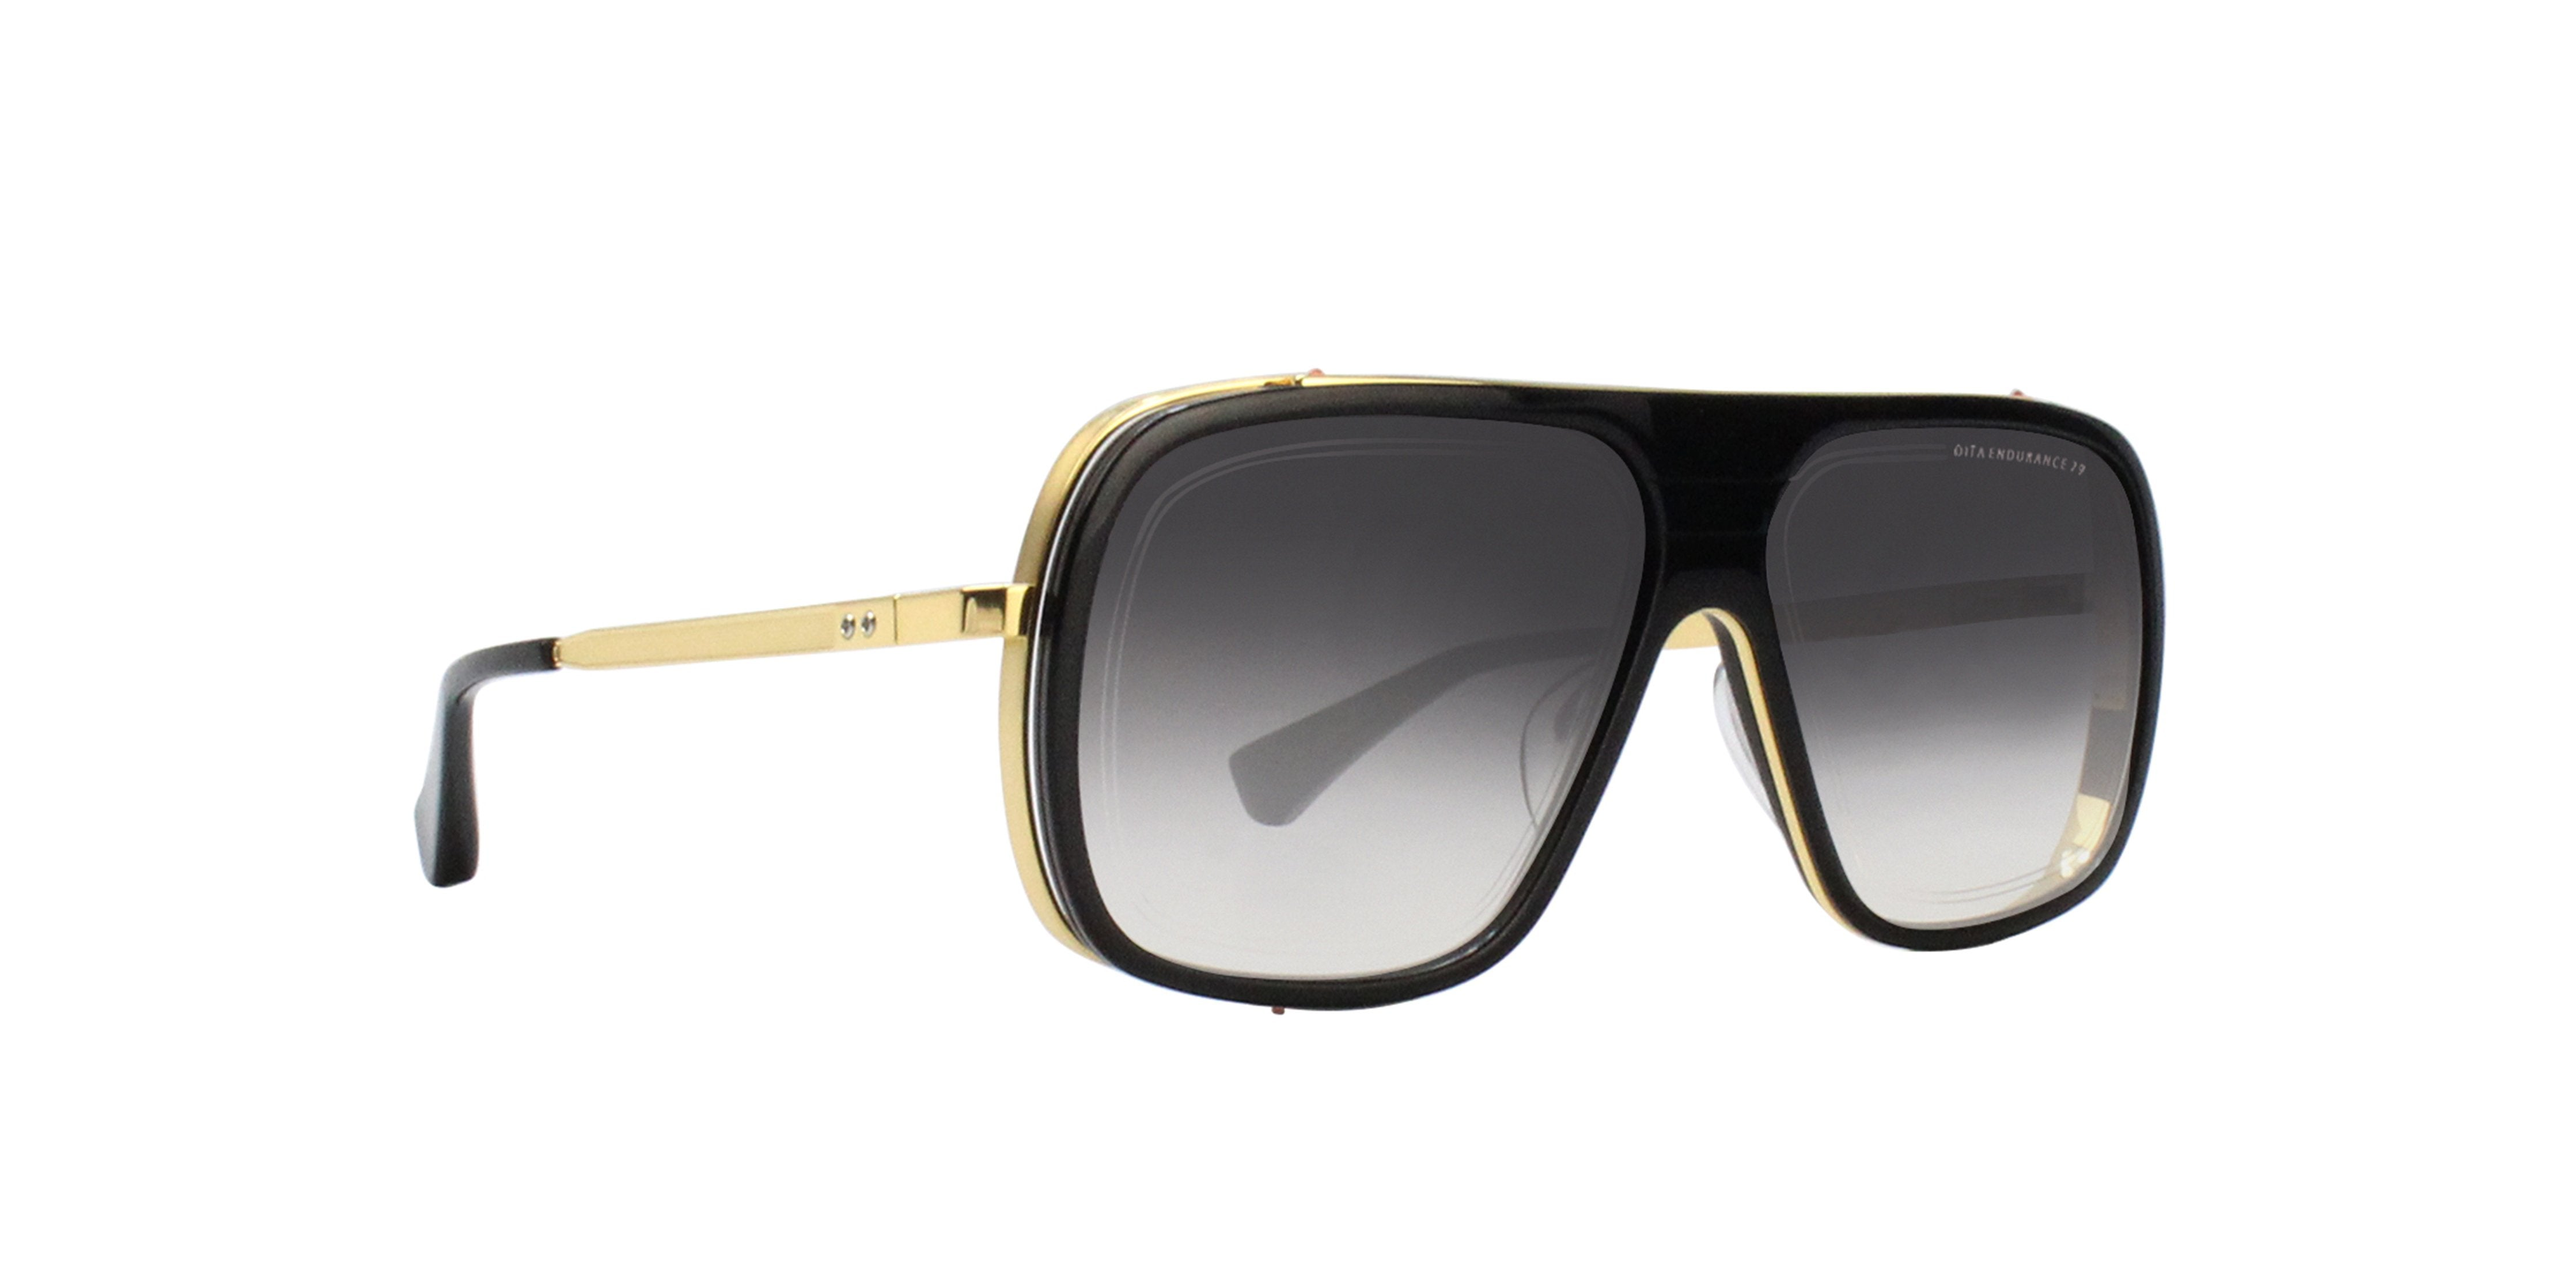 Dita - Endurance 79 Black Gold Aviator Men Sunglasses - 60mm-Sunglasses-Designer Eyes